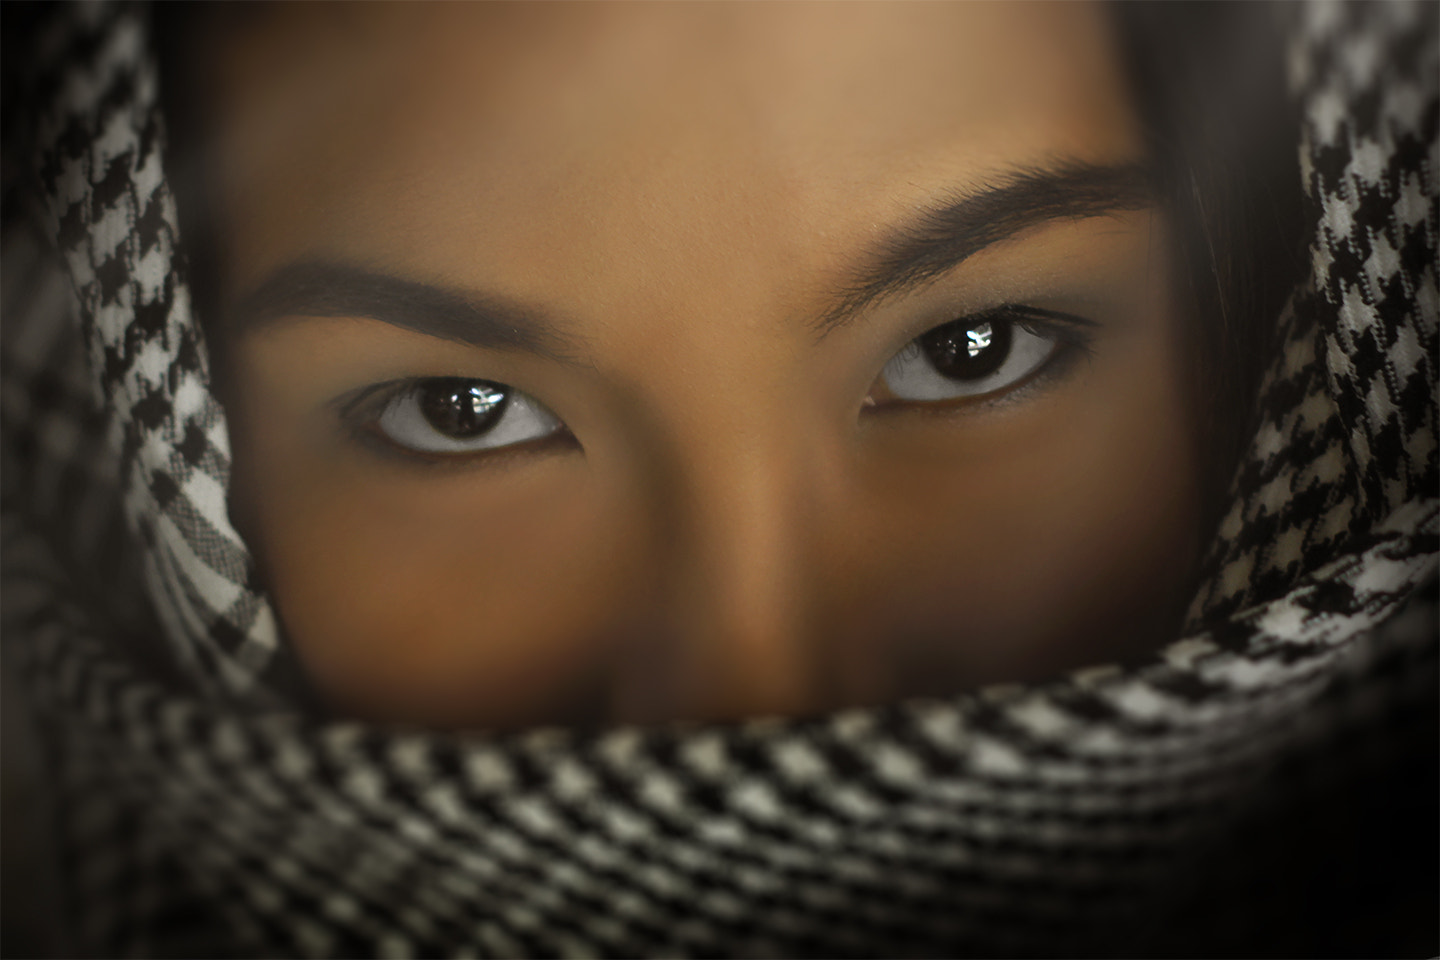 Photograph Eye's smile by Acee Coralde on 500px